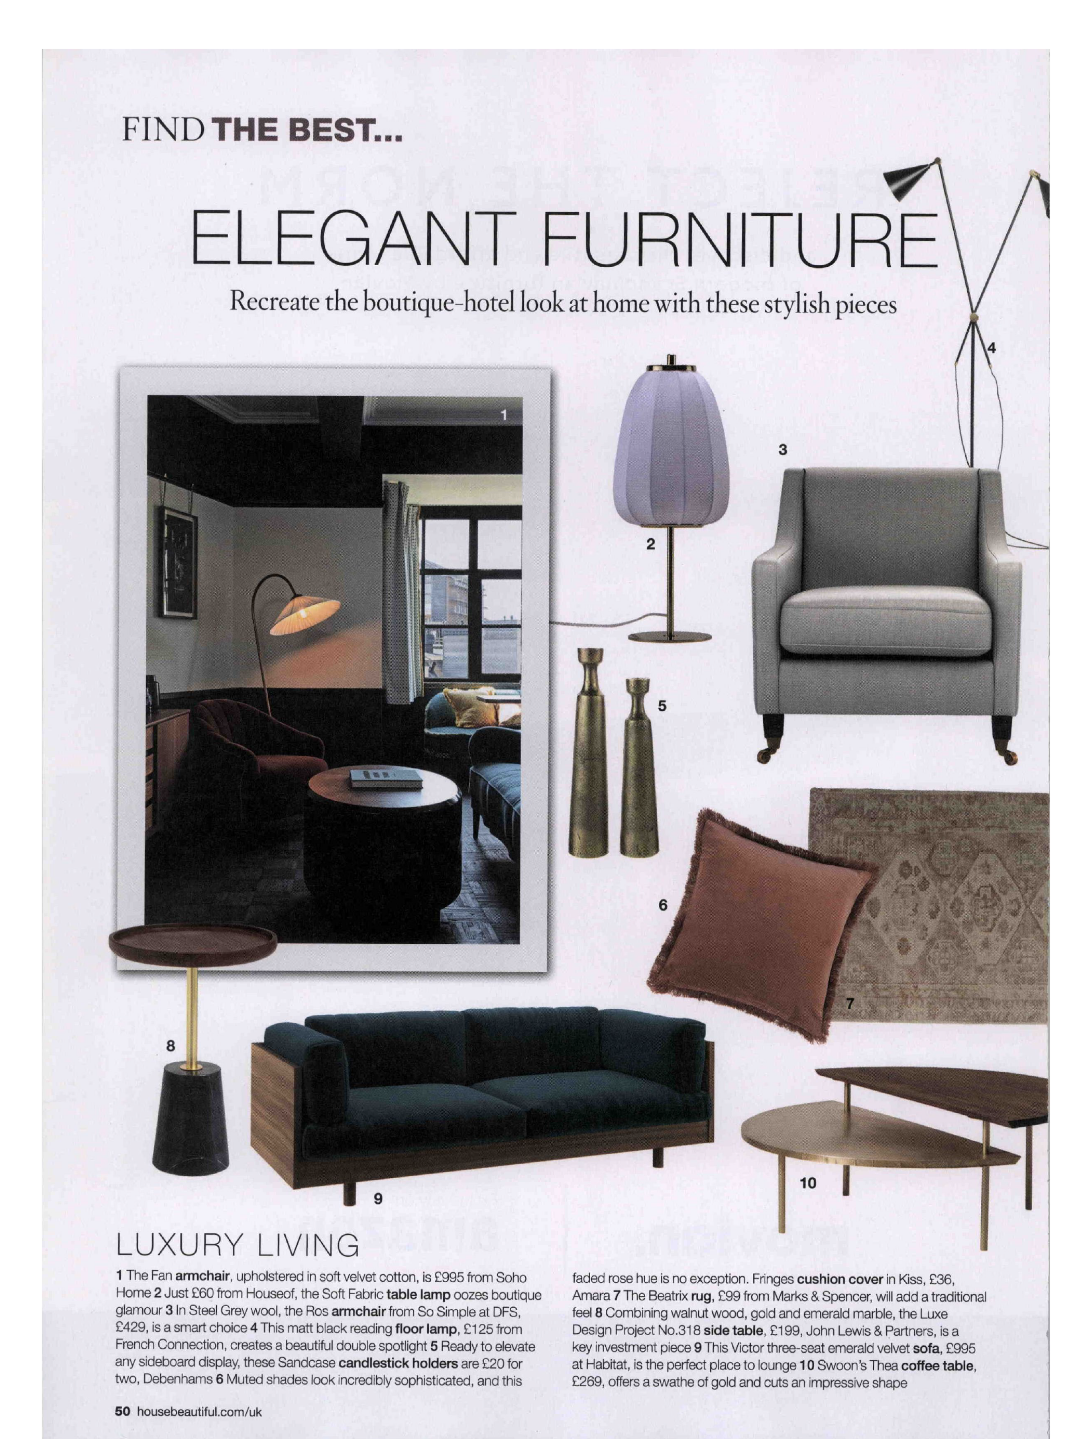 pressarticle-housebeautiful-houseof-findthebest-elegant-furniture-1